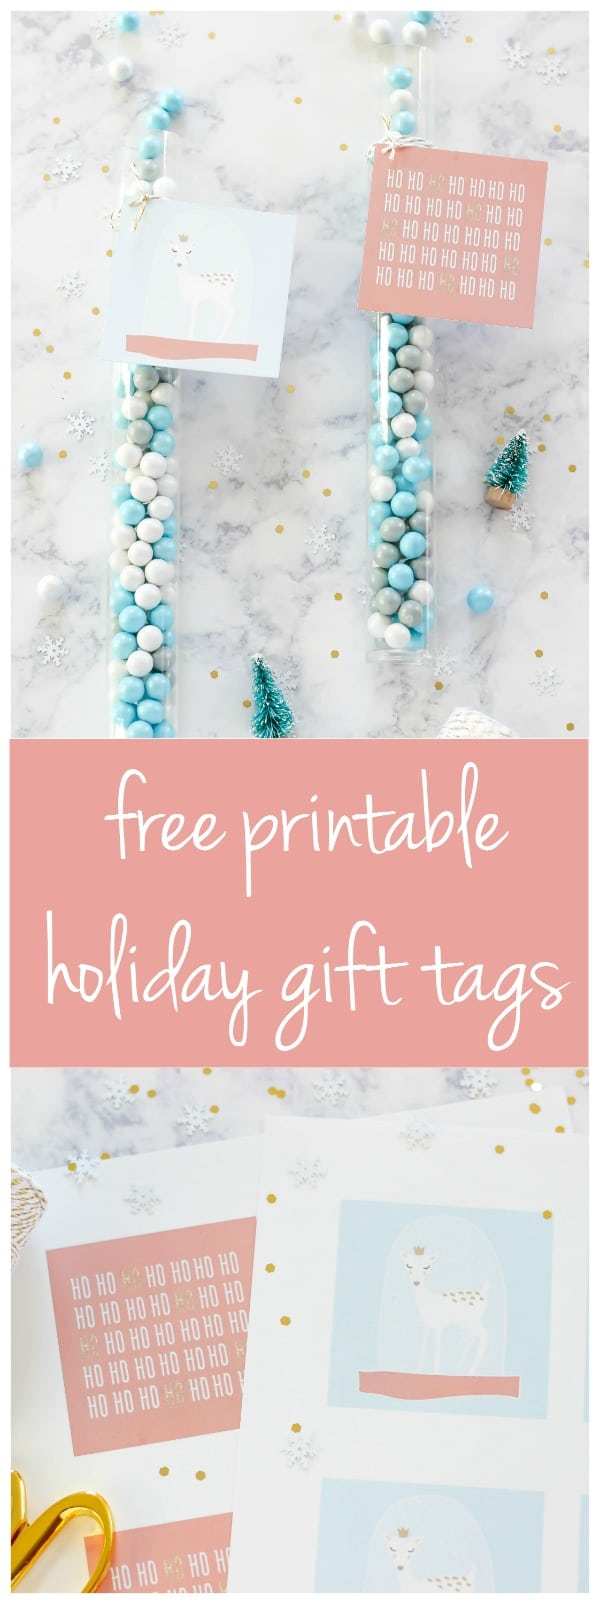 free-printable-holiday-gift-tags